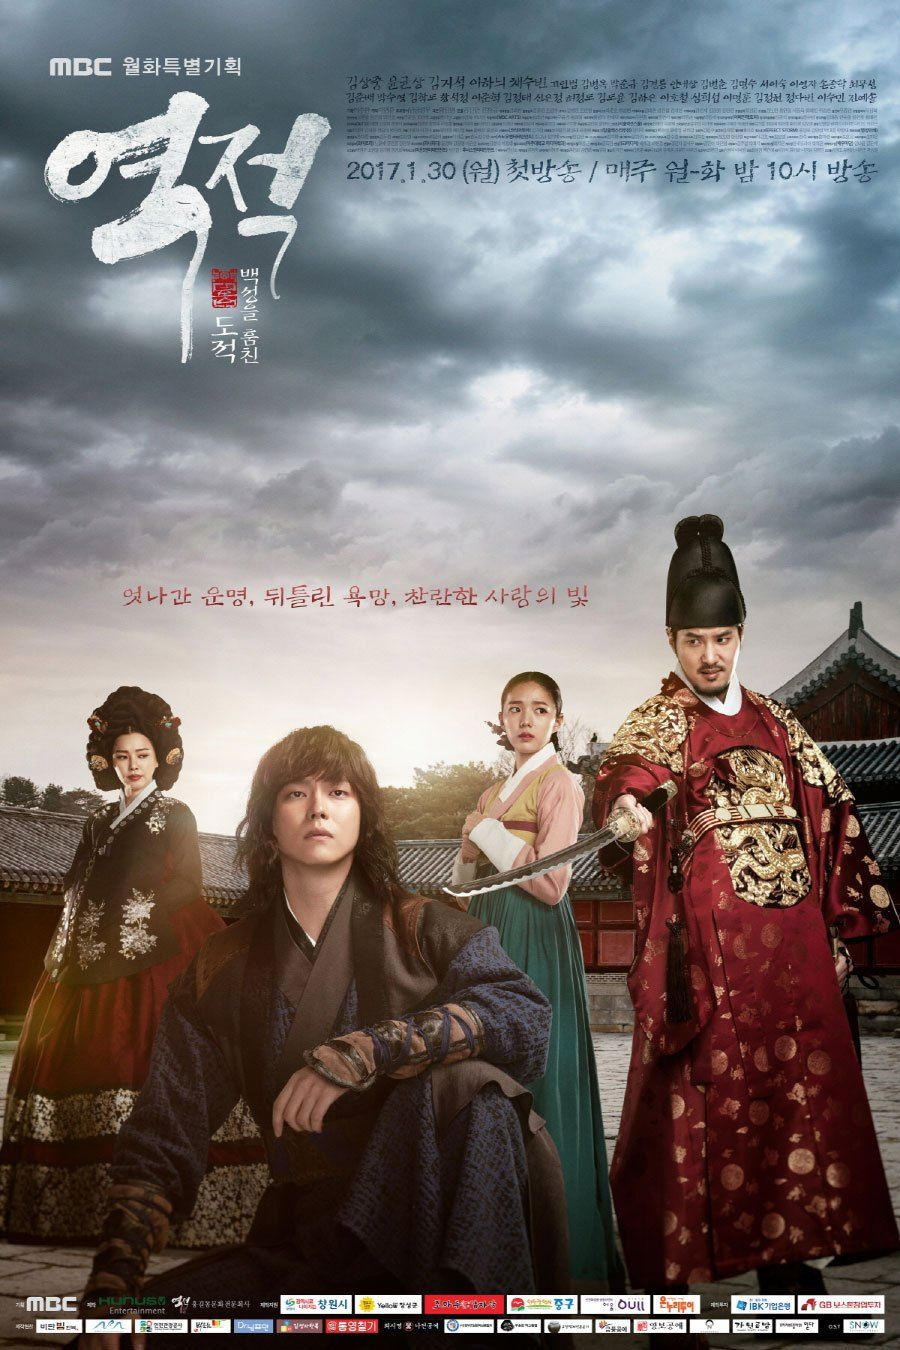 Download new drama rebel thief who stole the people korean drama download new drama rebel thief who stole the people korean drama 2017 ccuart Image collections